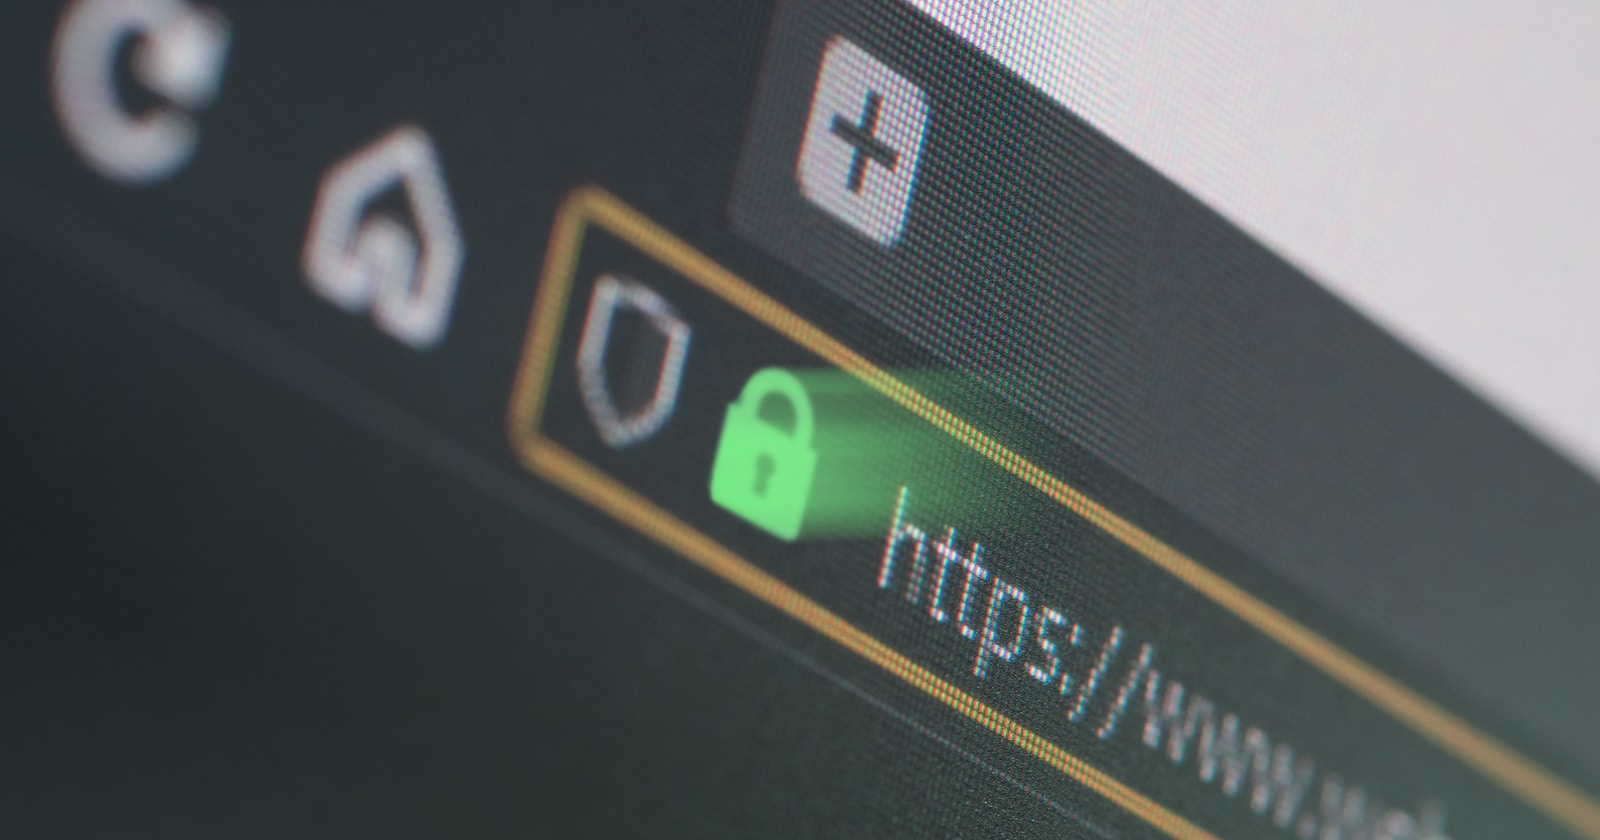 What Type of SSL Certificate Does Your Website Need? via @sejournal, @BrianHarnish